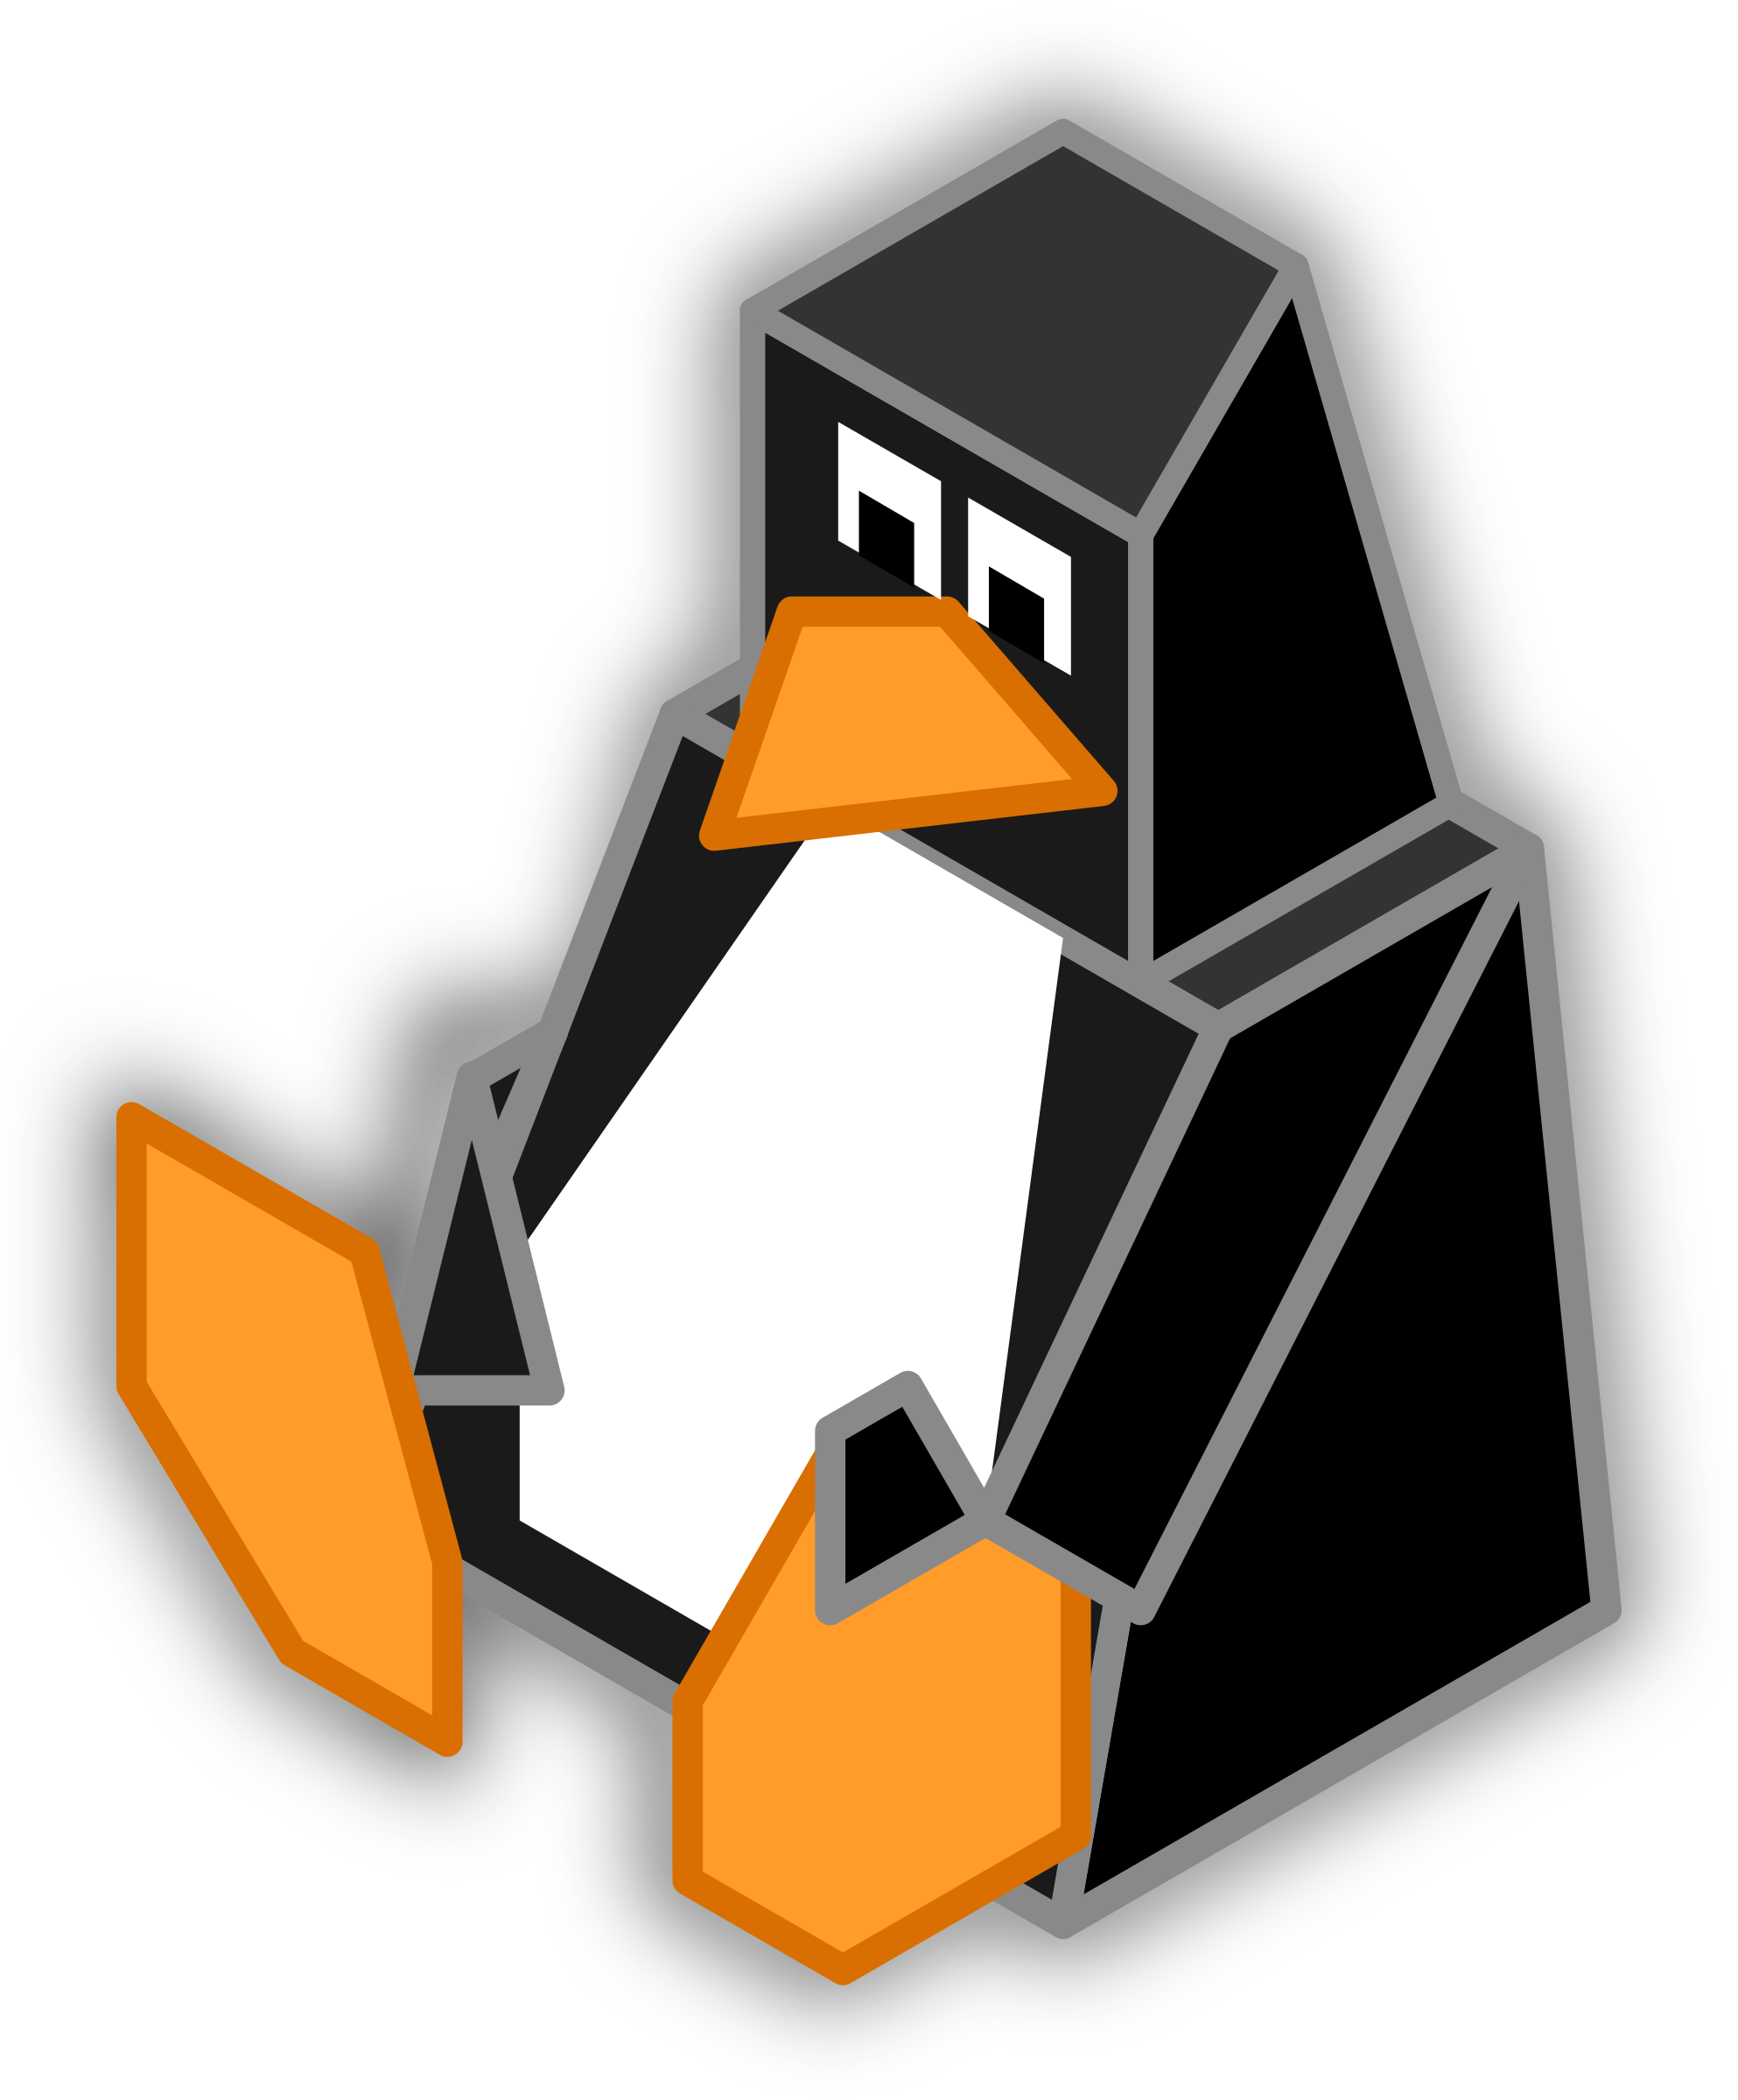 Isometric Tux by Fabuio